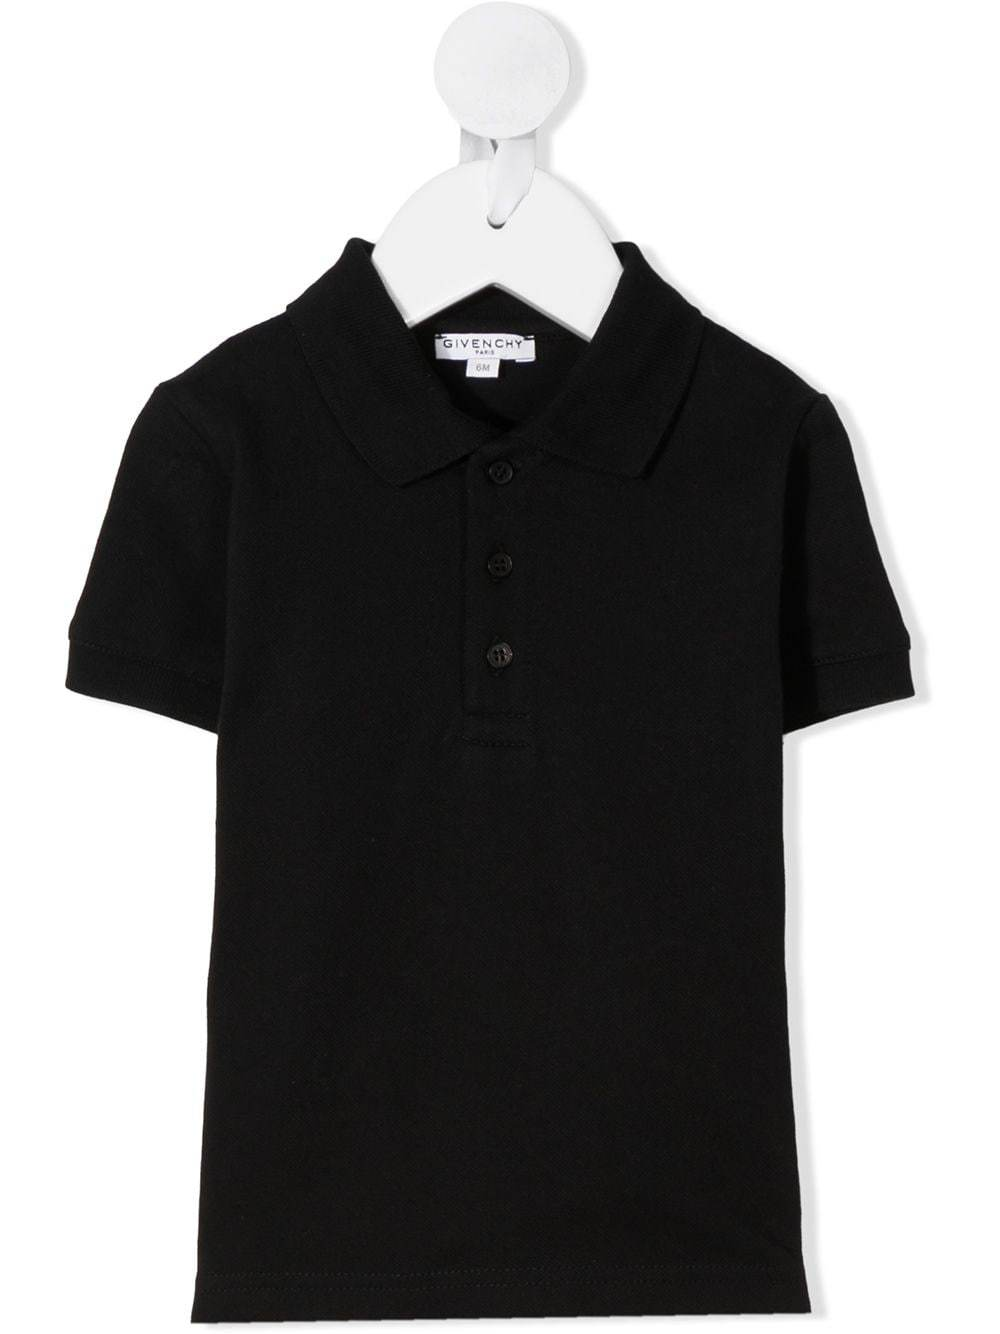 GIVENCHY KIDS Logo Polo Shirt Black - Maison De Fashion